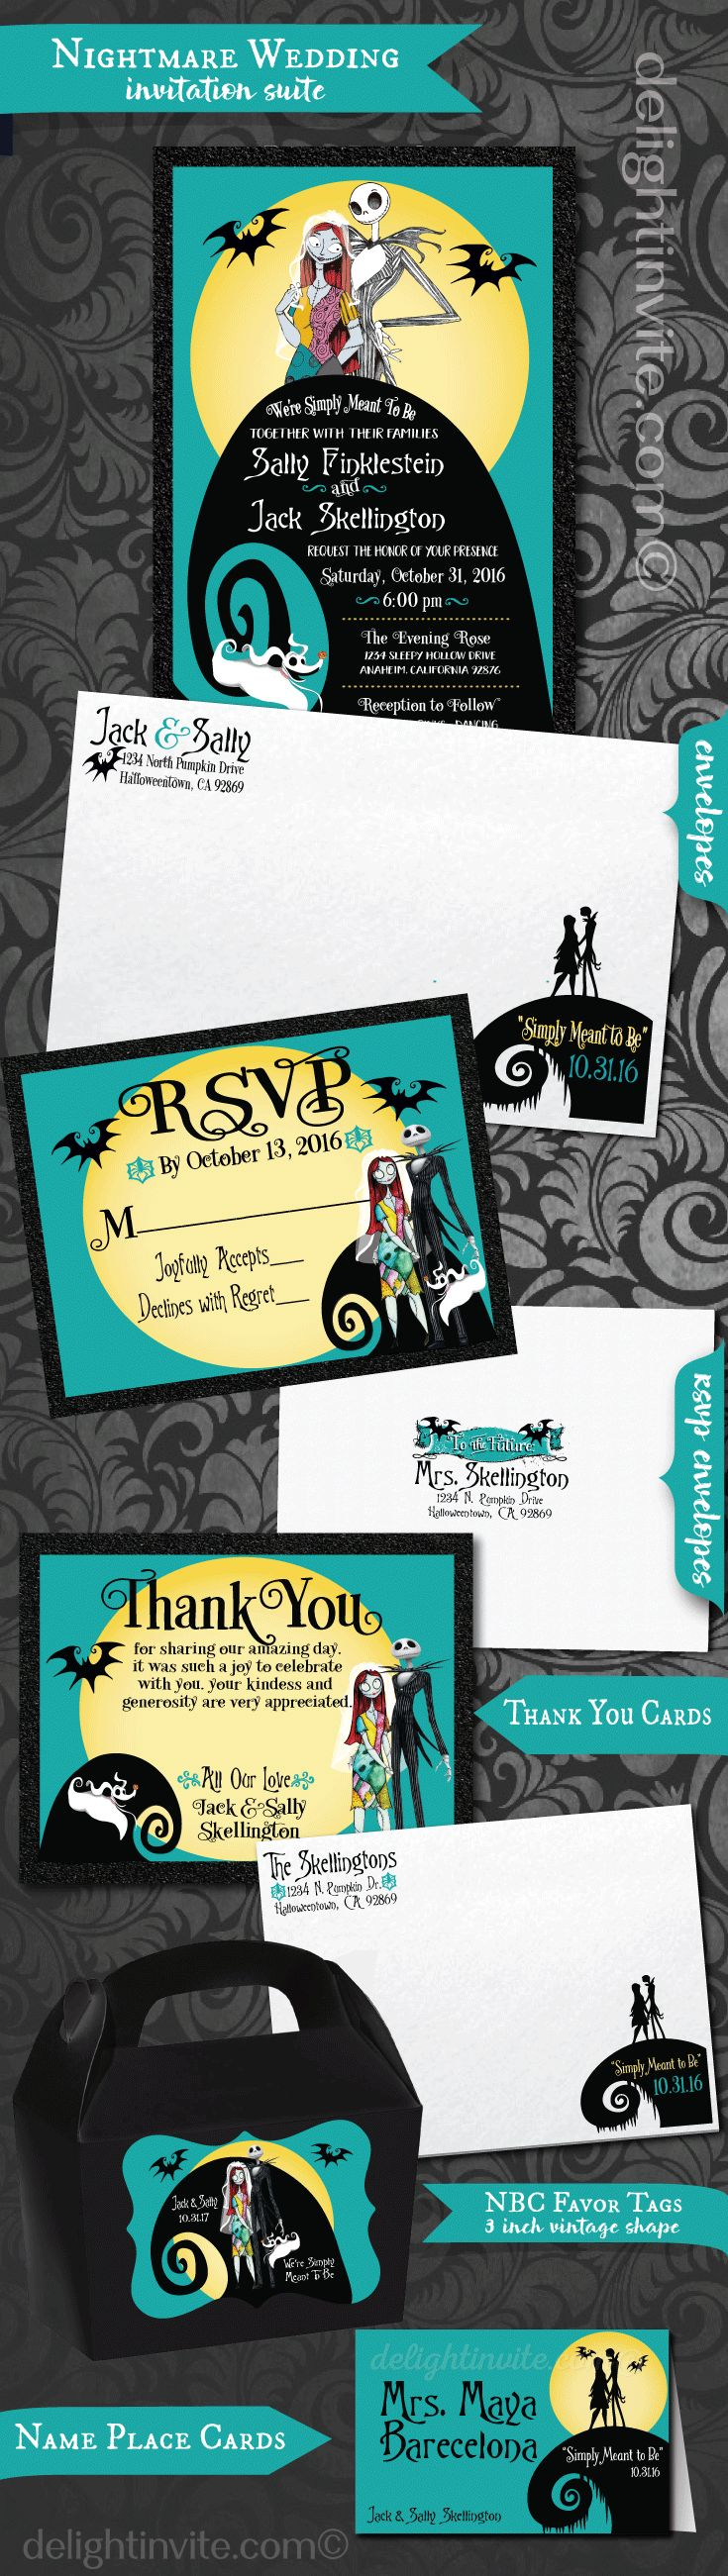 Best 25+ Nightmare before christmas wedding ideas on Pinterest ...